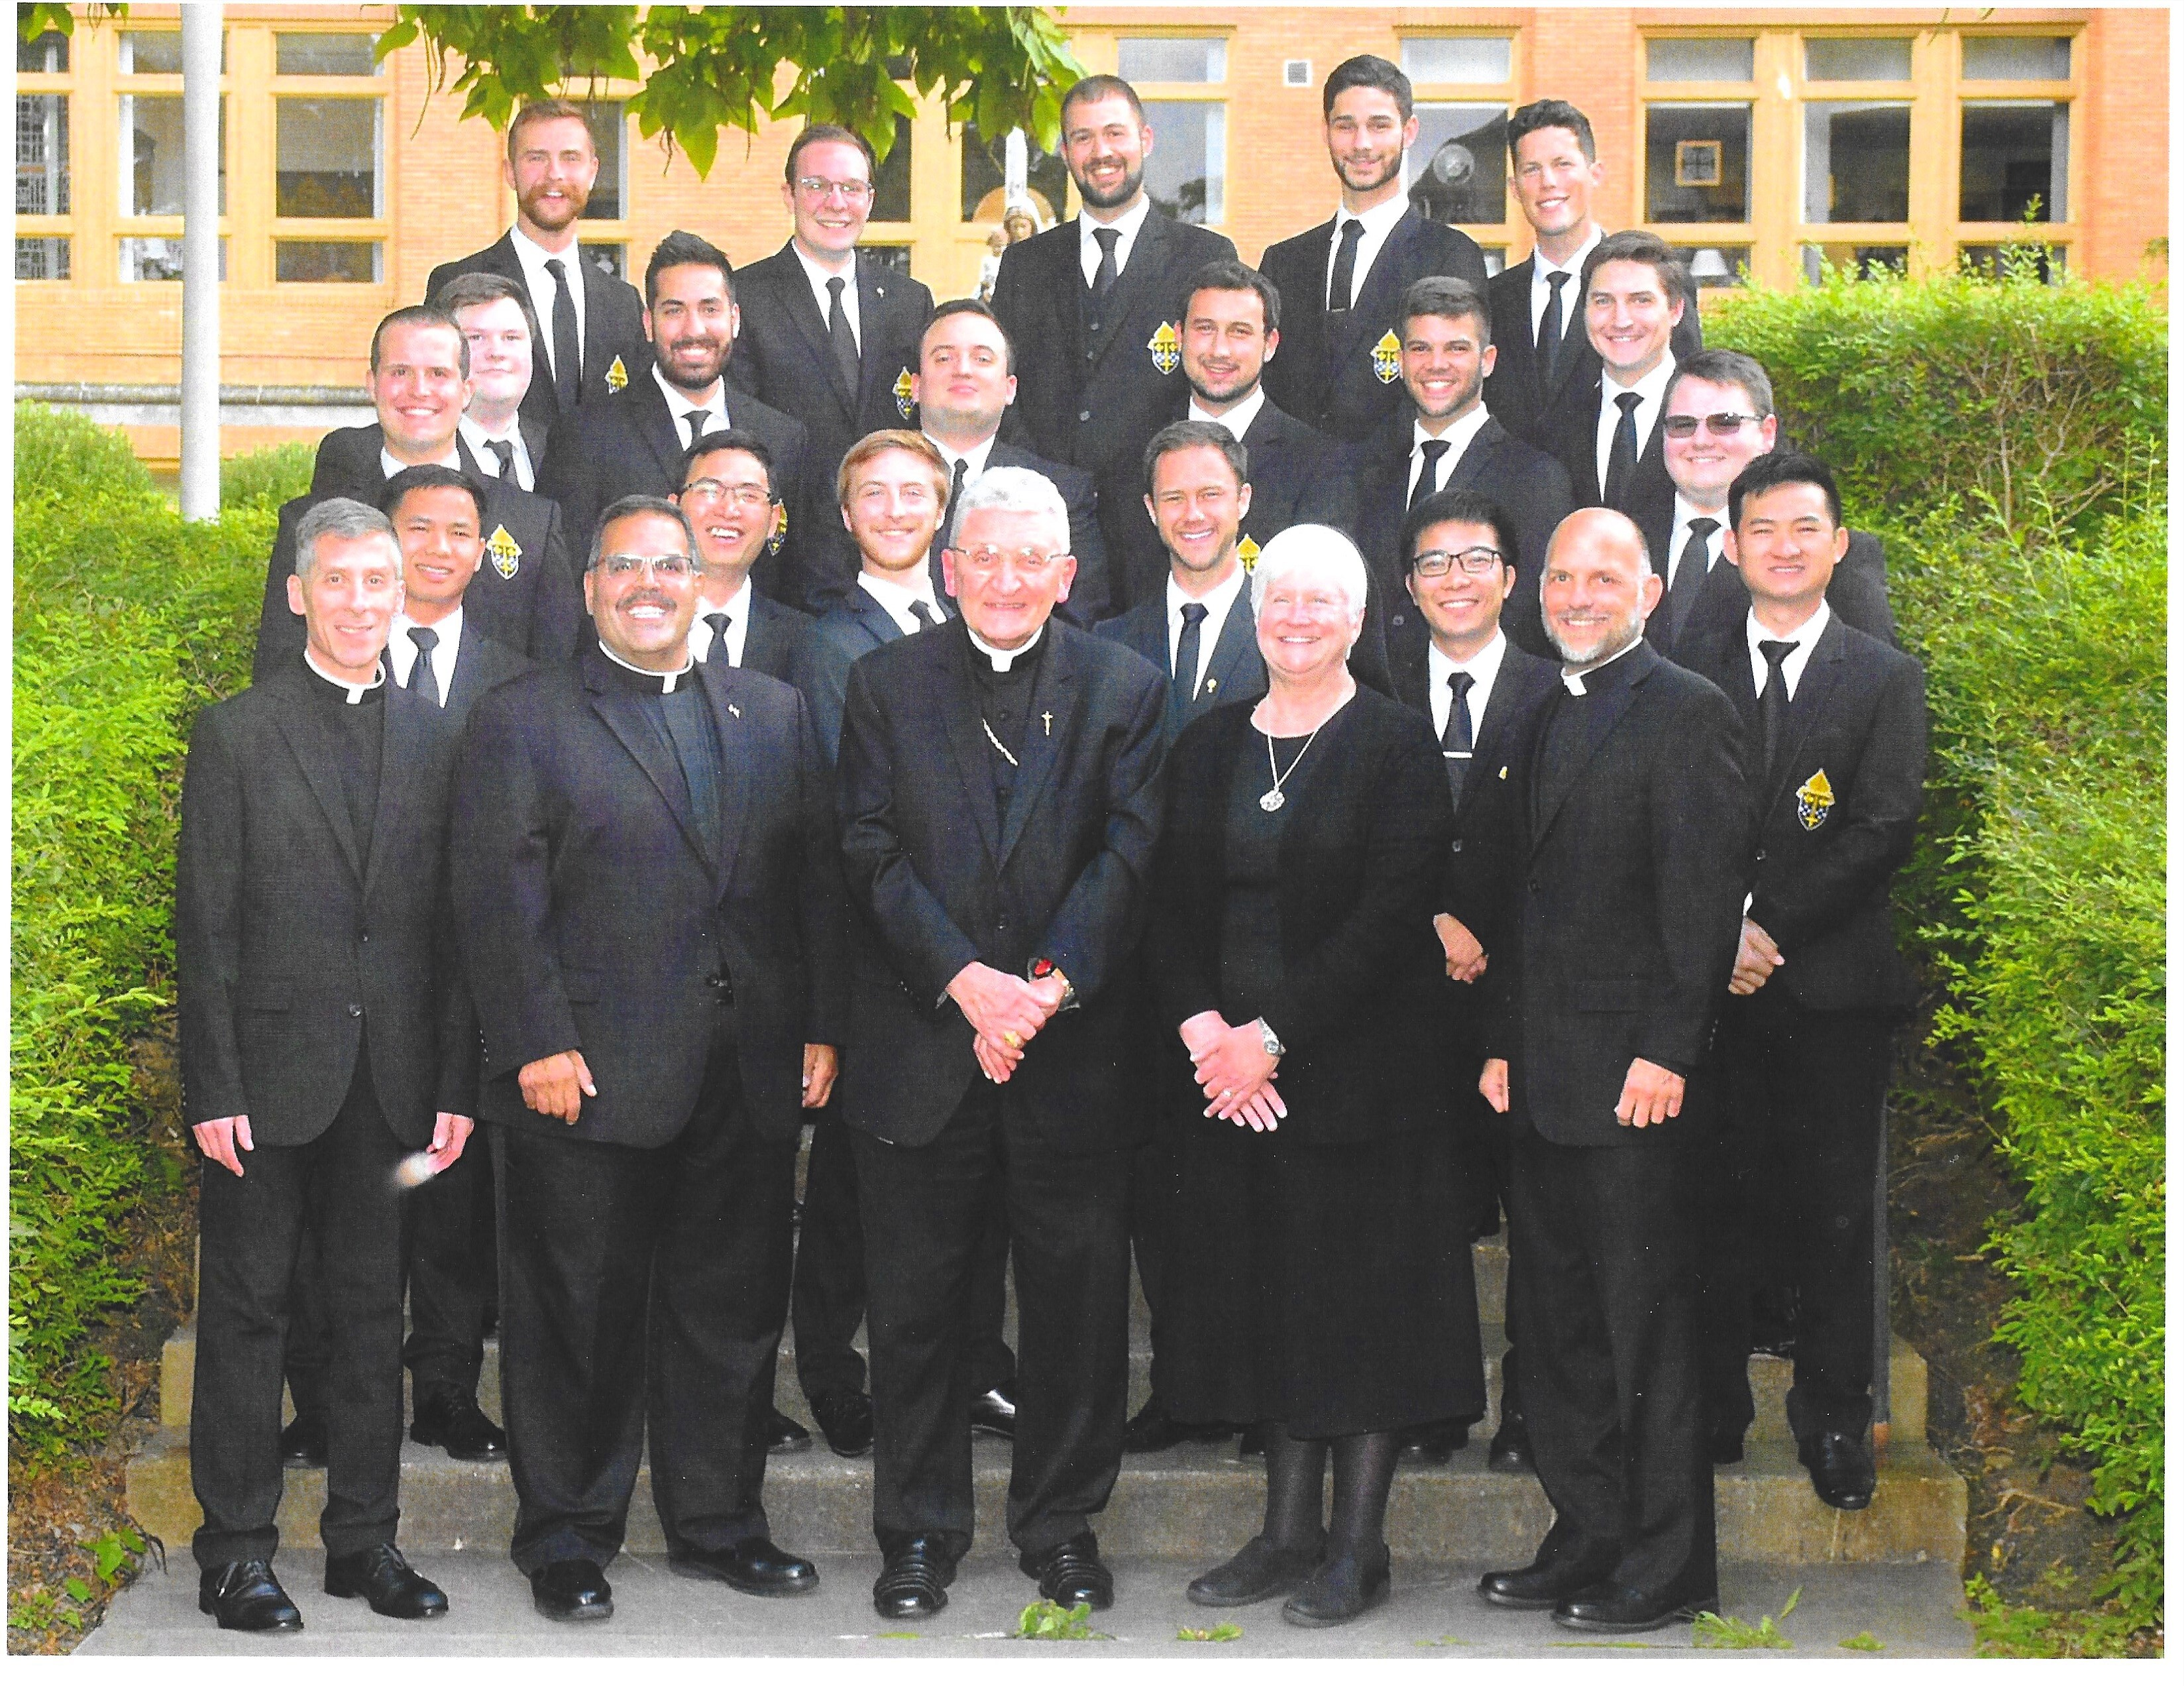 Please pray for these men who are at the beginning of their discernment journey.